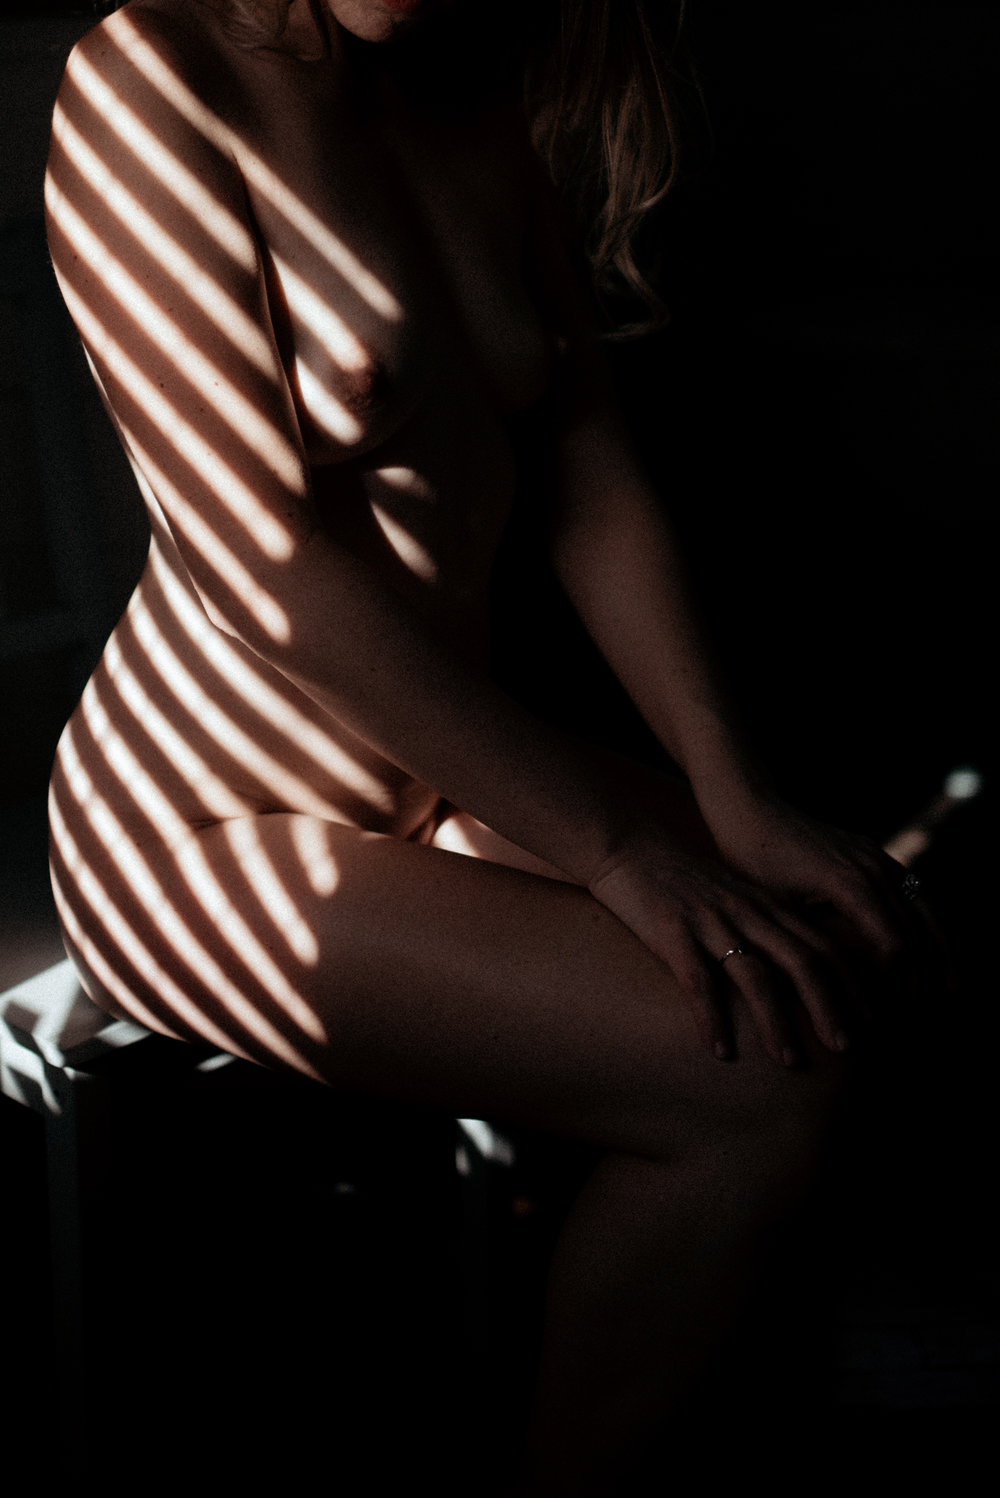 Window shade shadows on body, Intimacy + Shadows Boudoir Session | Rooney June Productions